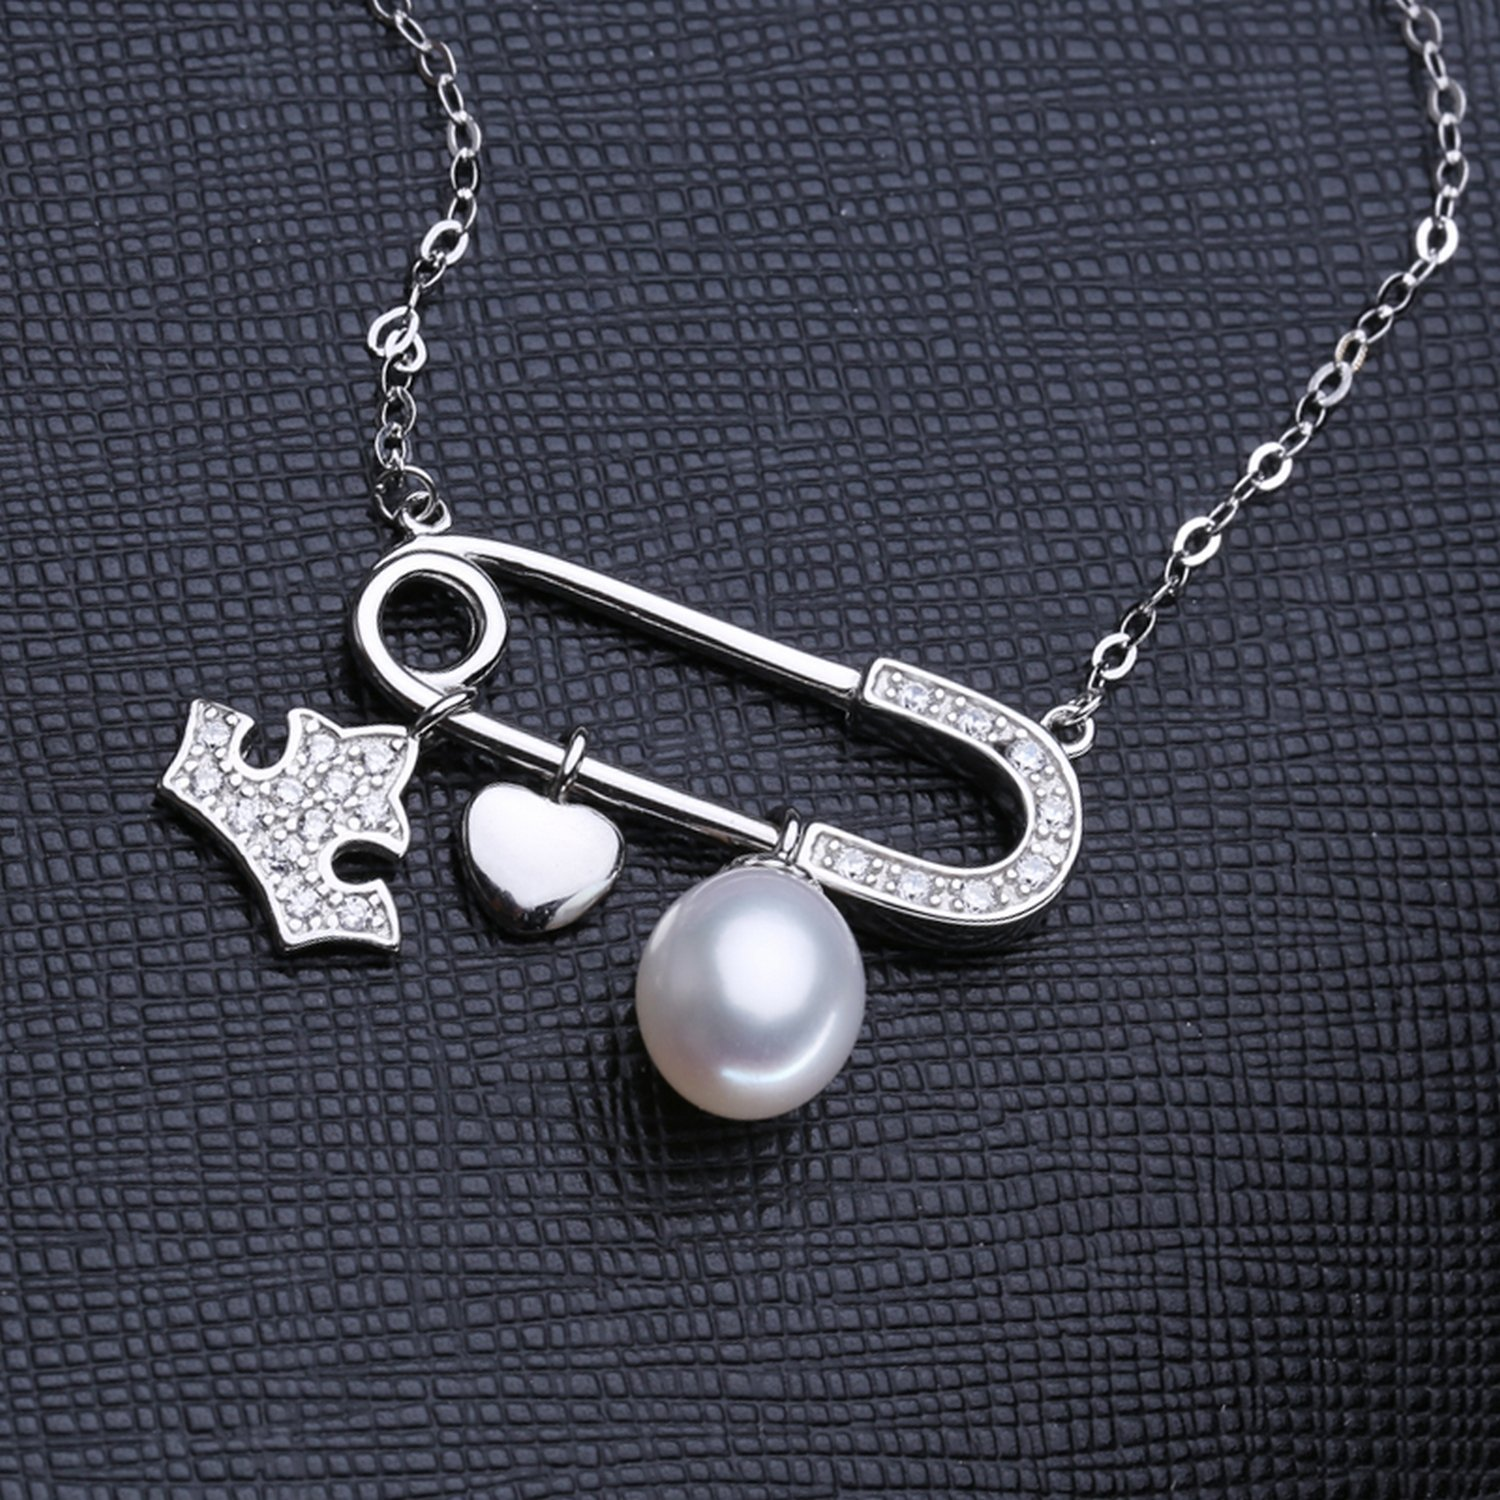 CS-DB Jewelry Silver Pearl Engagement Chain Charm Pendants Necklaces